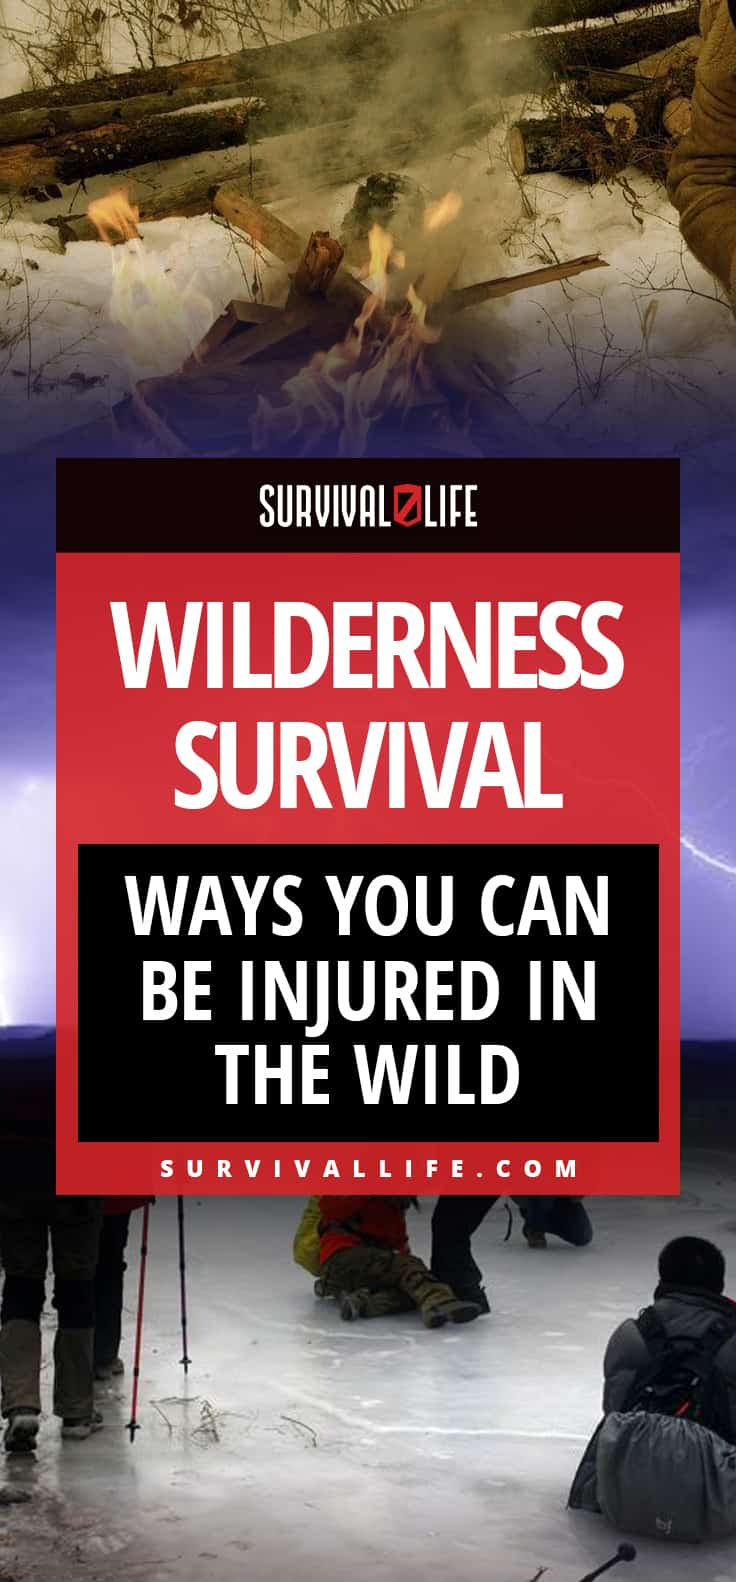 Wilderness Survival | Ways You Can Be Injured In The Wild